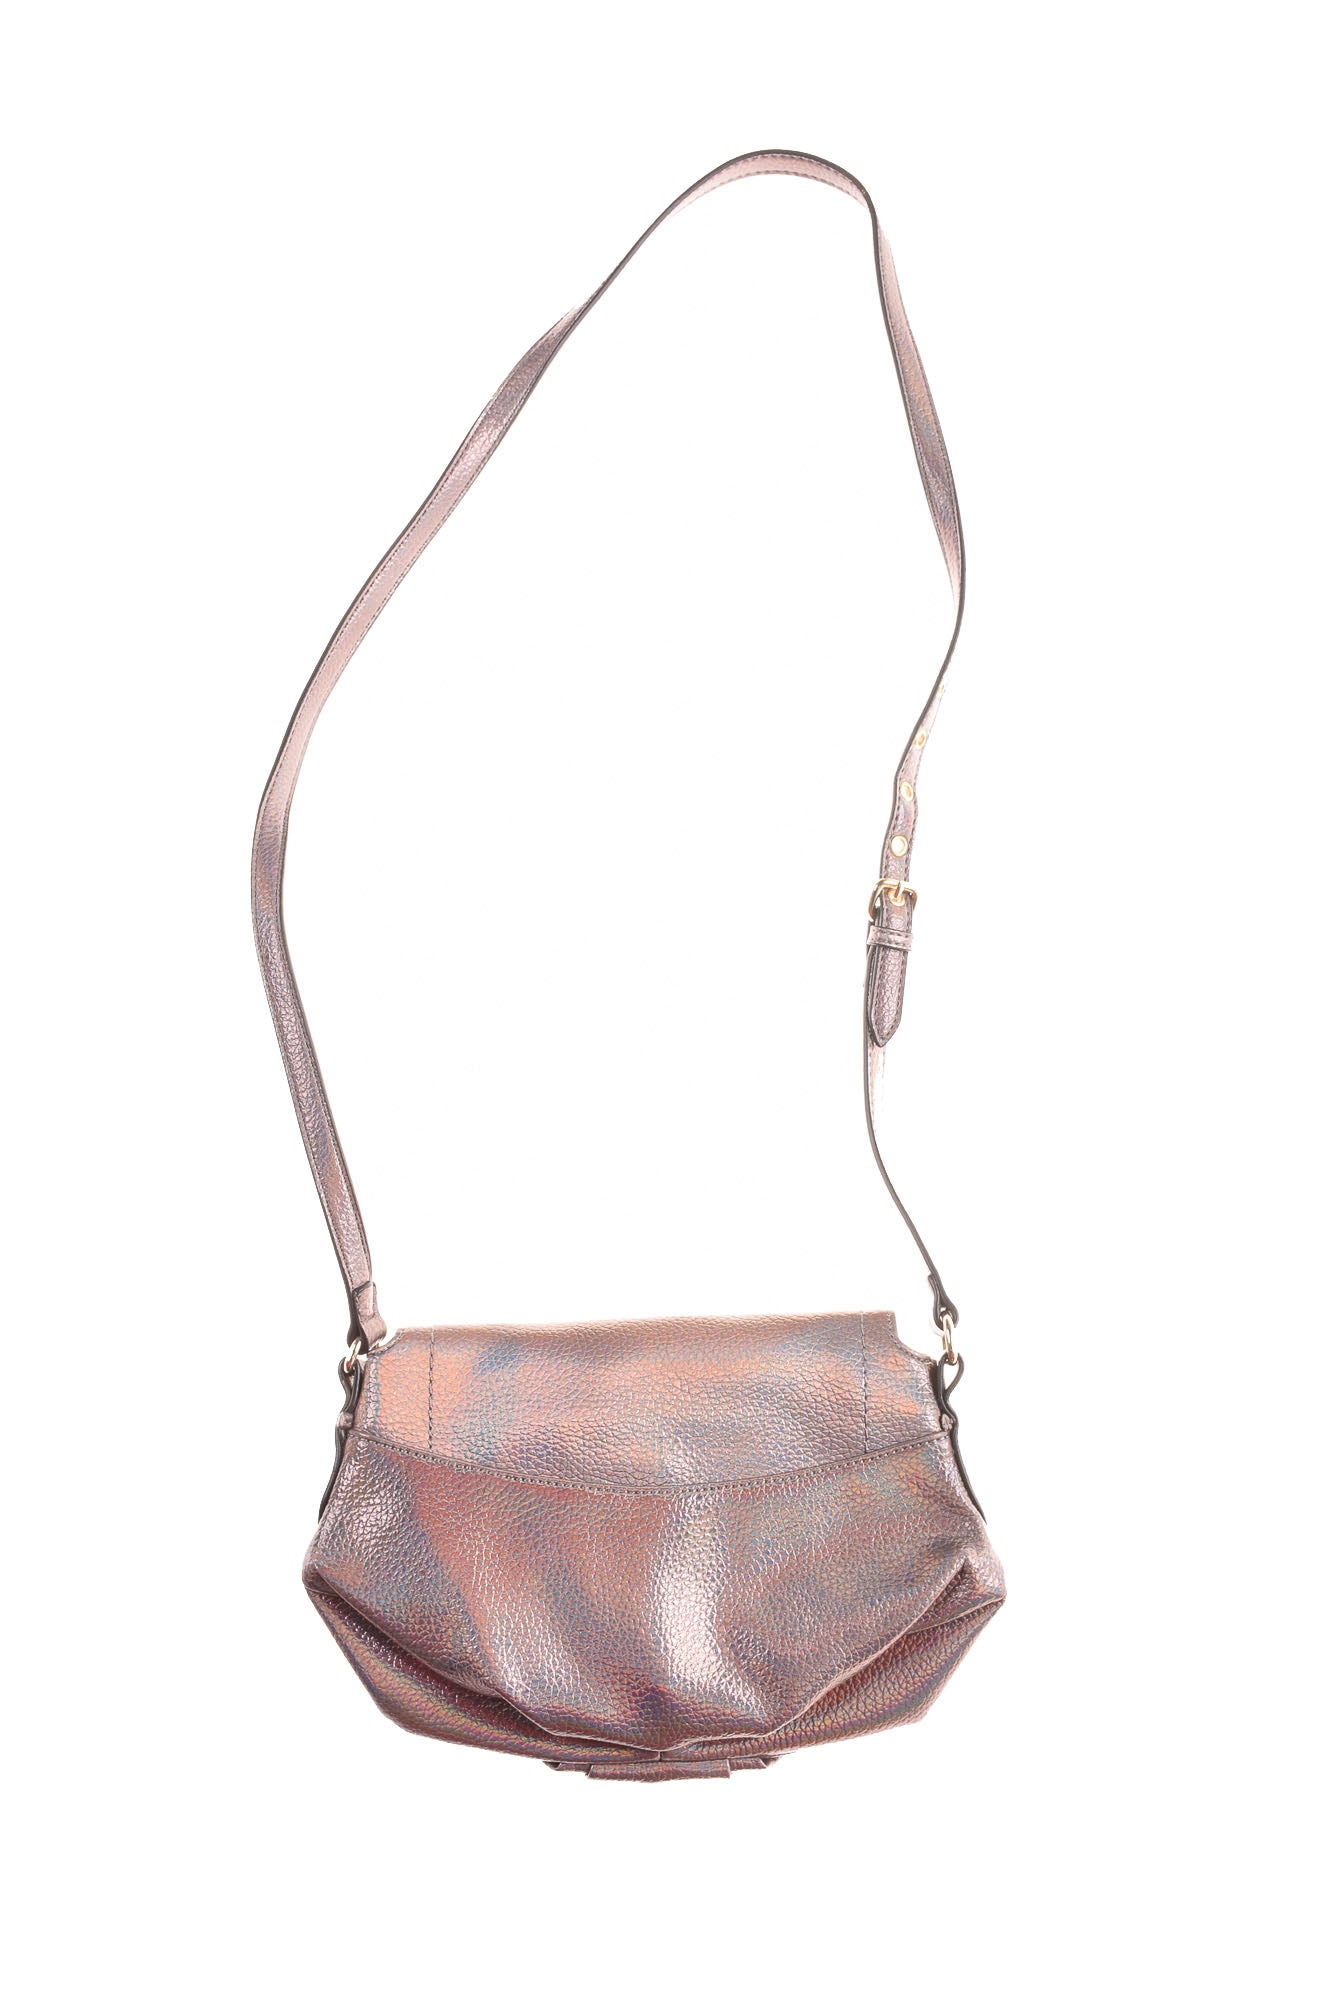 Women s Handbag By Juicy Couture - Village Discount Outlet 01a6079aa